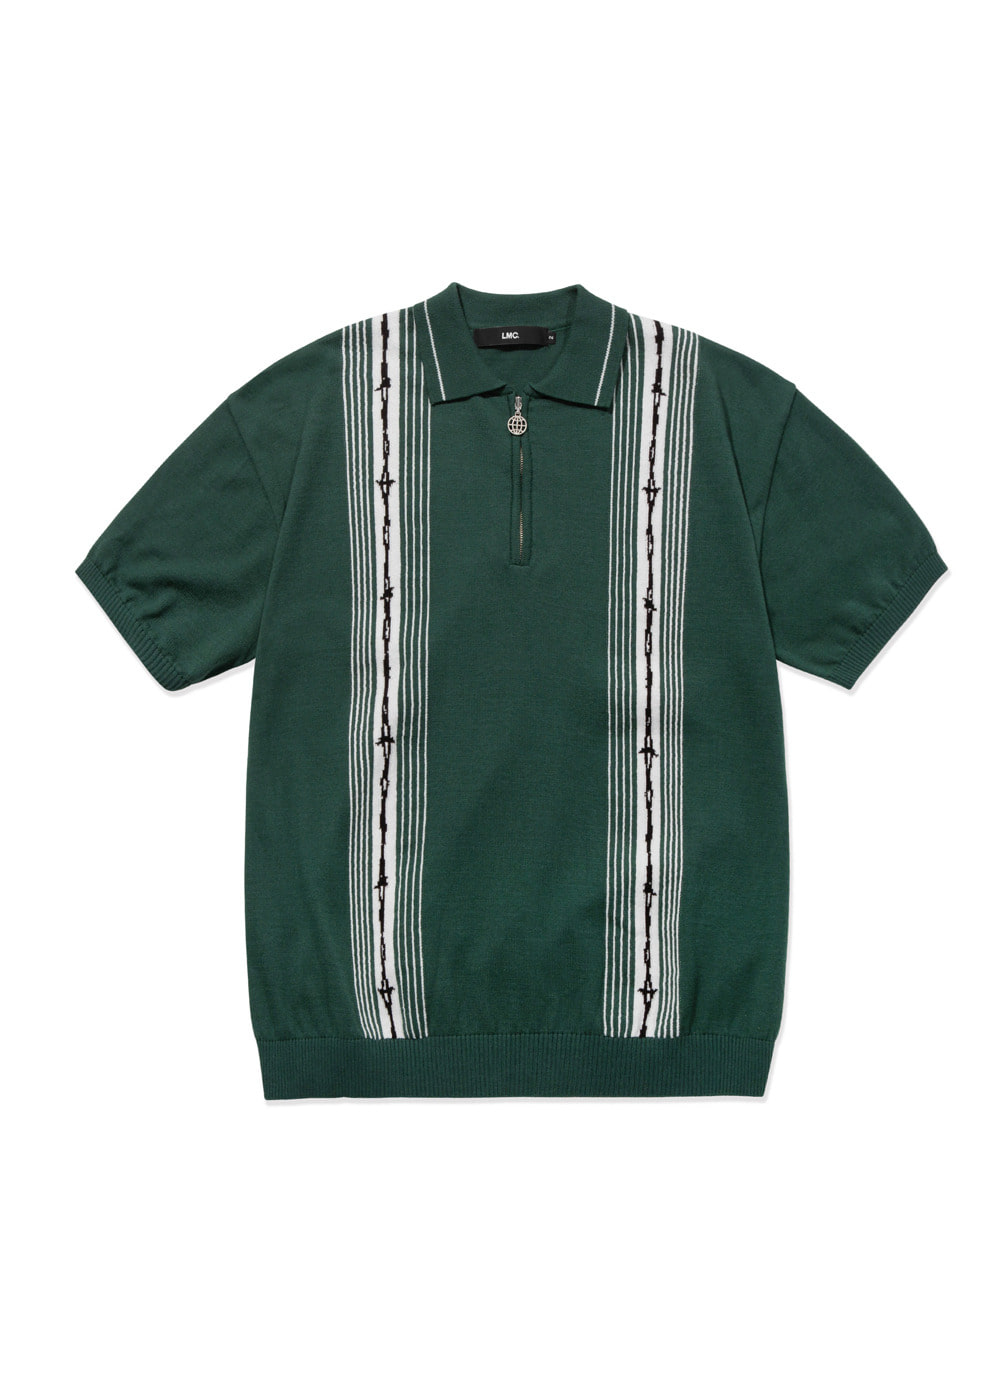 LMC BARBWIRE KNIT POLO SHIRT green